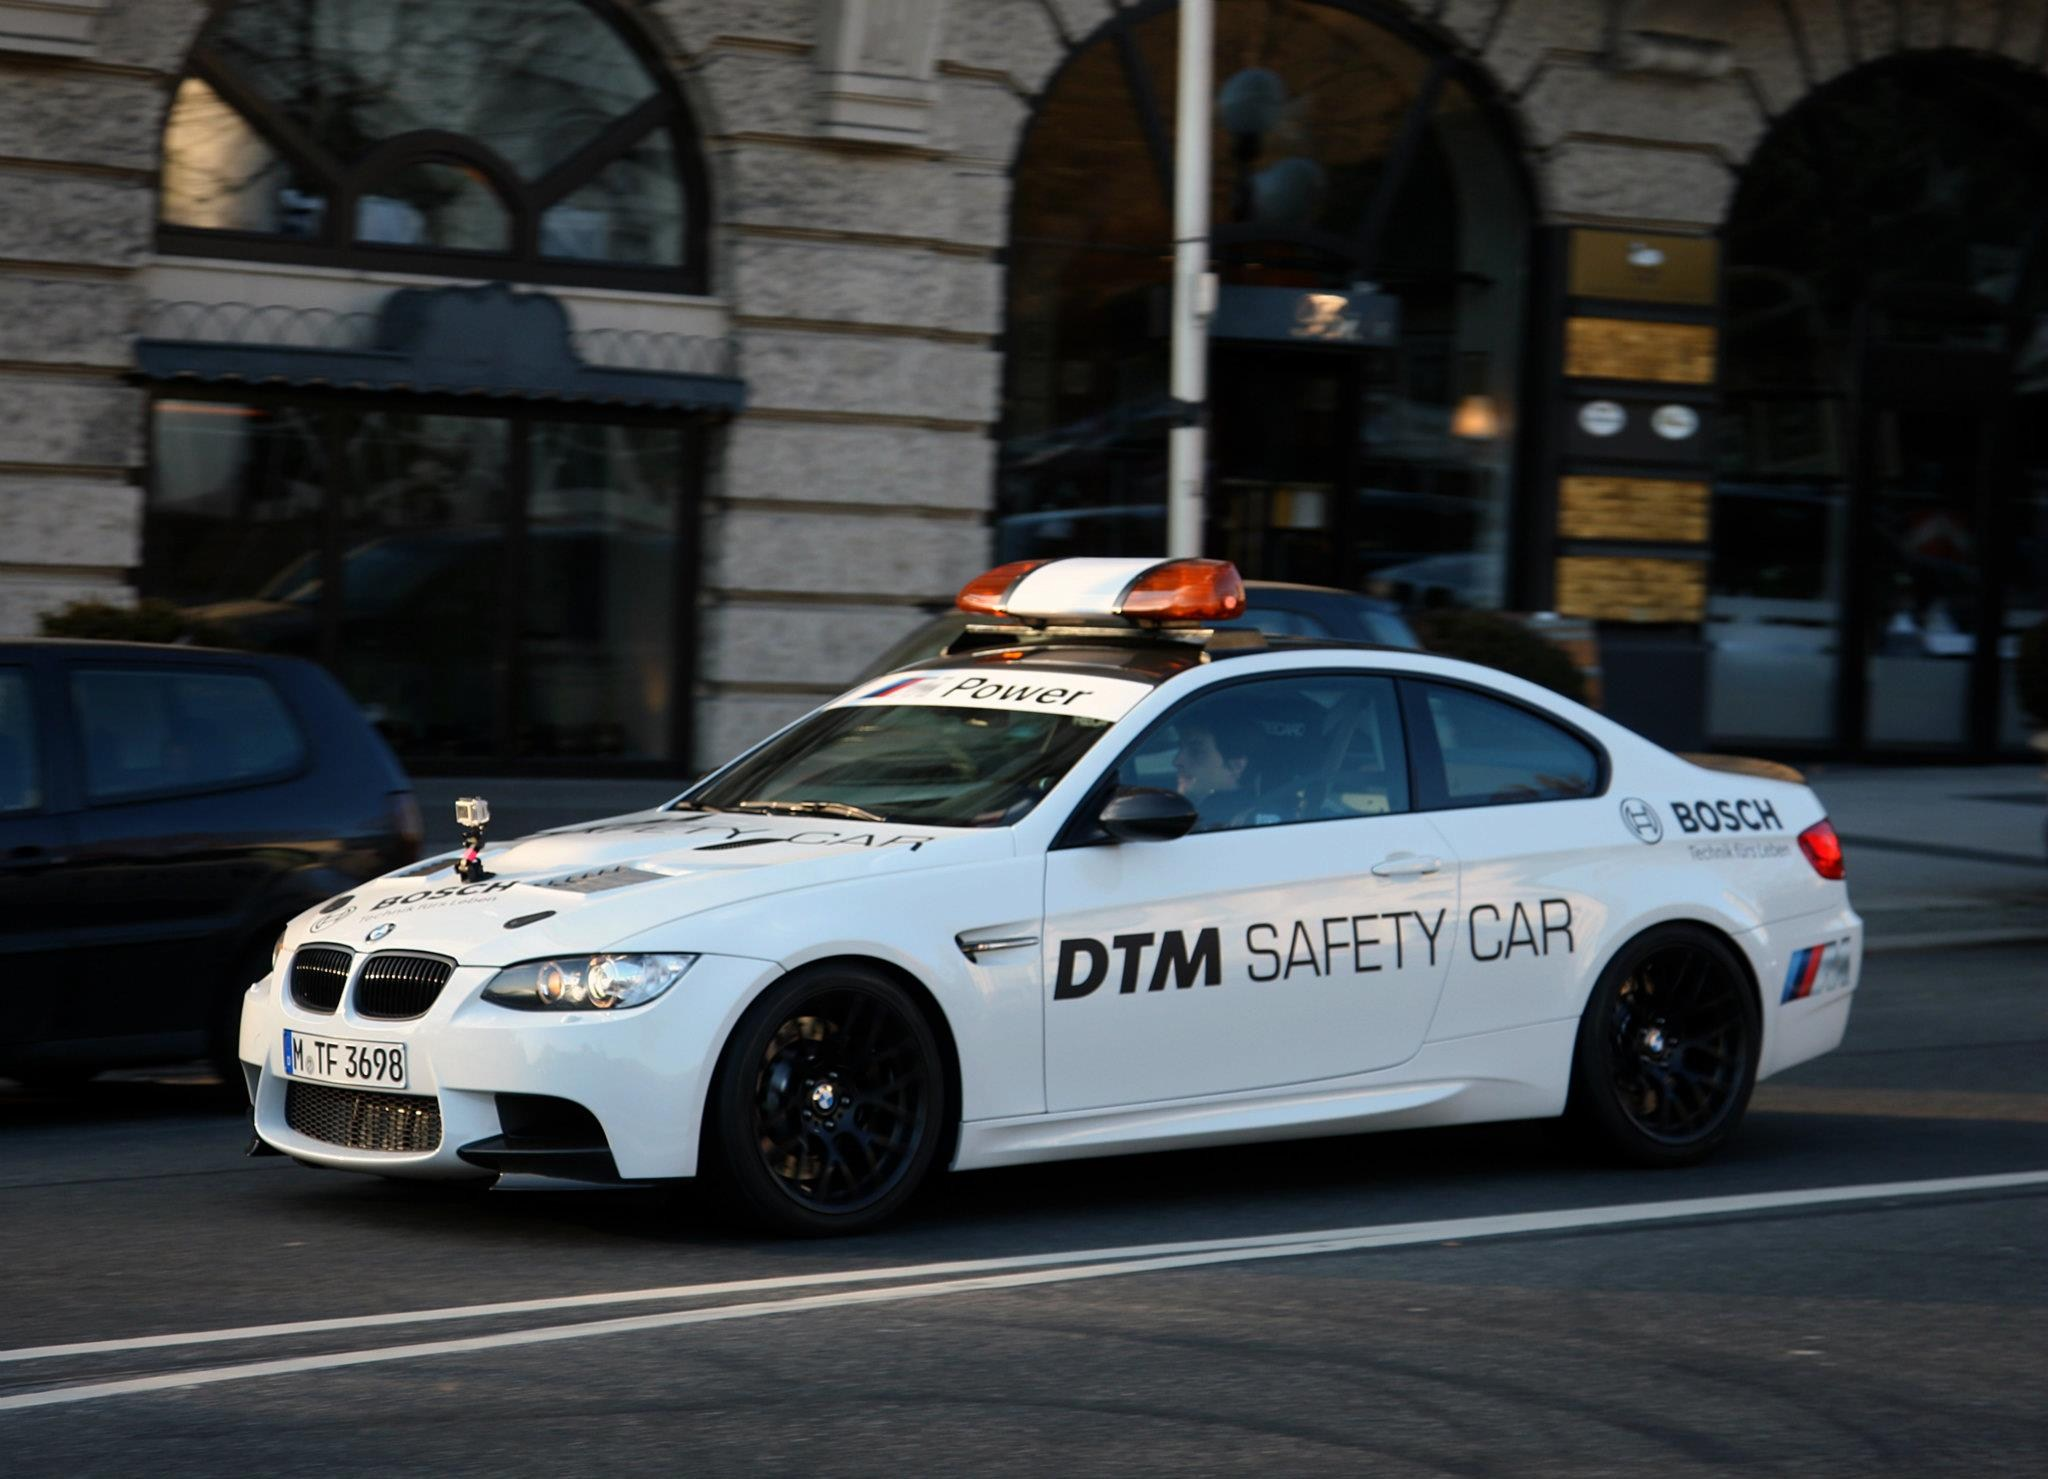 New BMW M3 >> 2012 BMW M3 DTM Safety Car Review - Top Speed